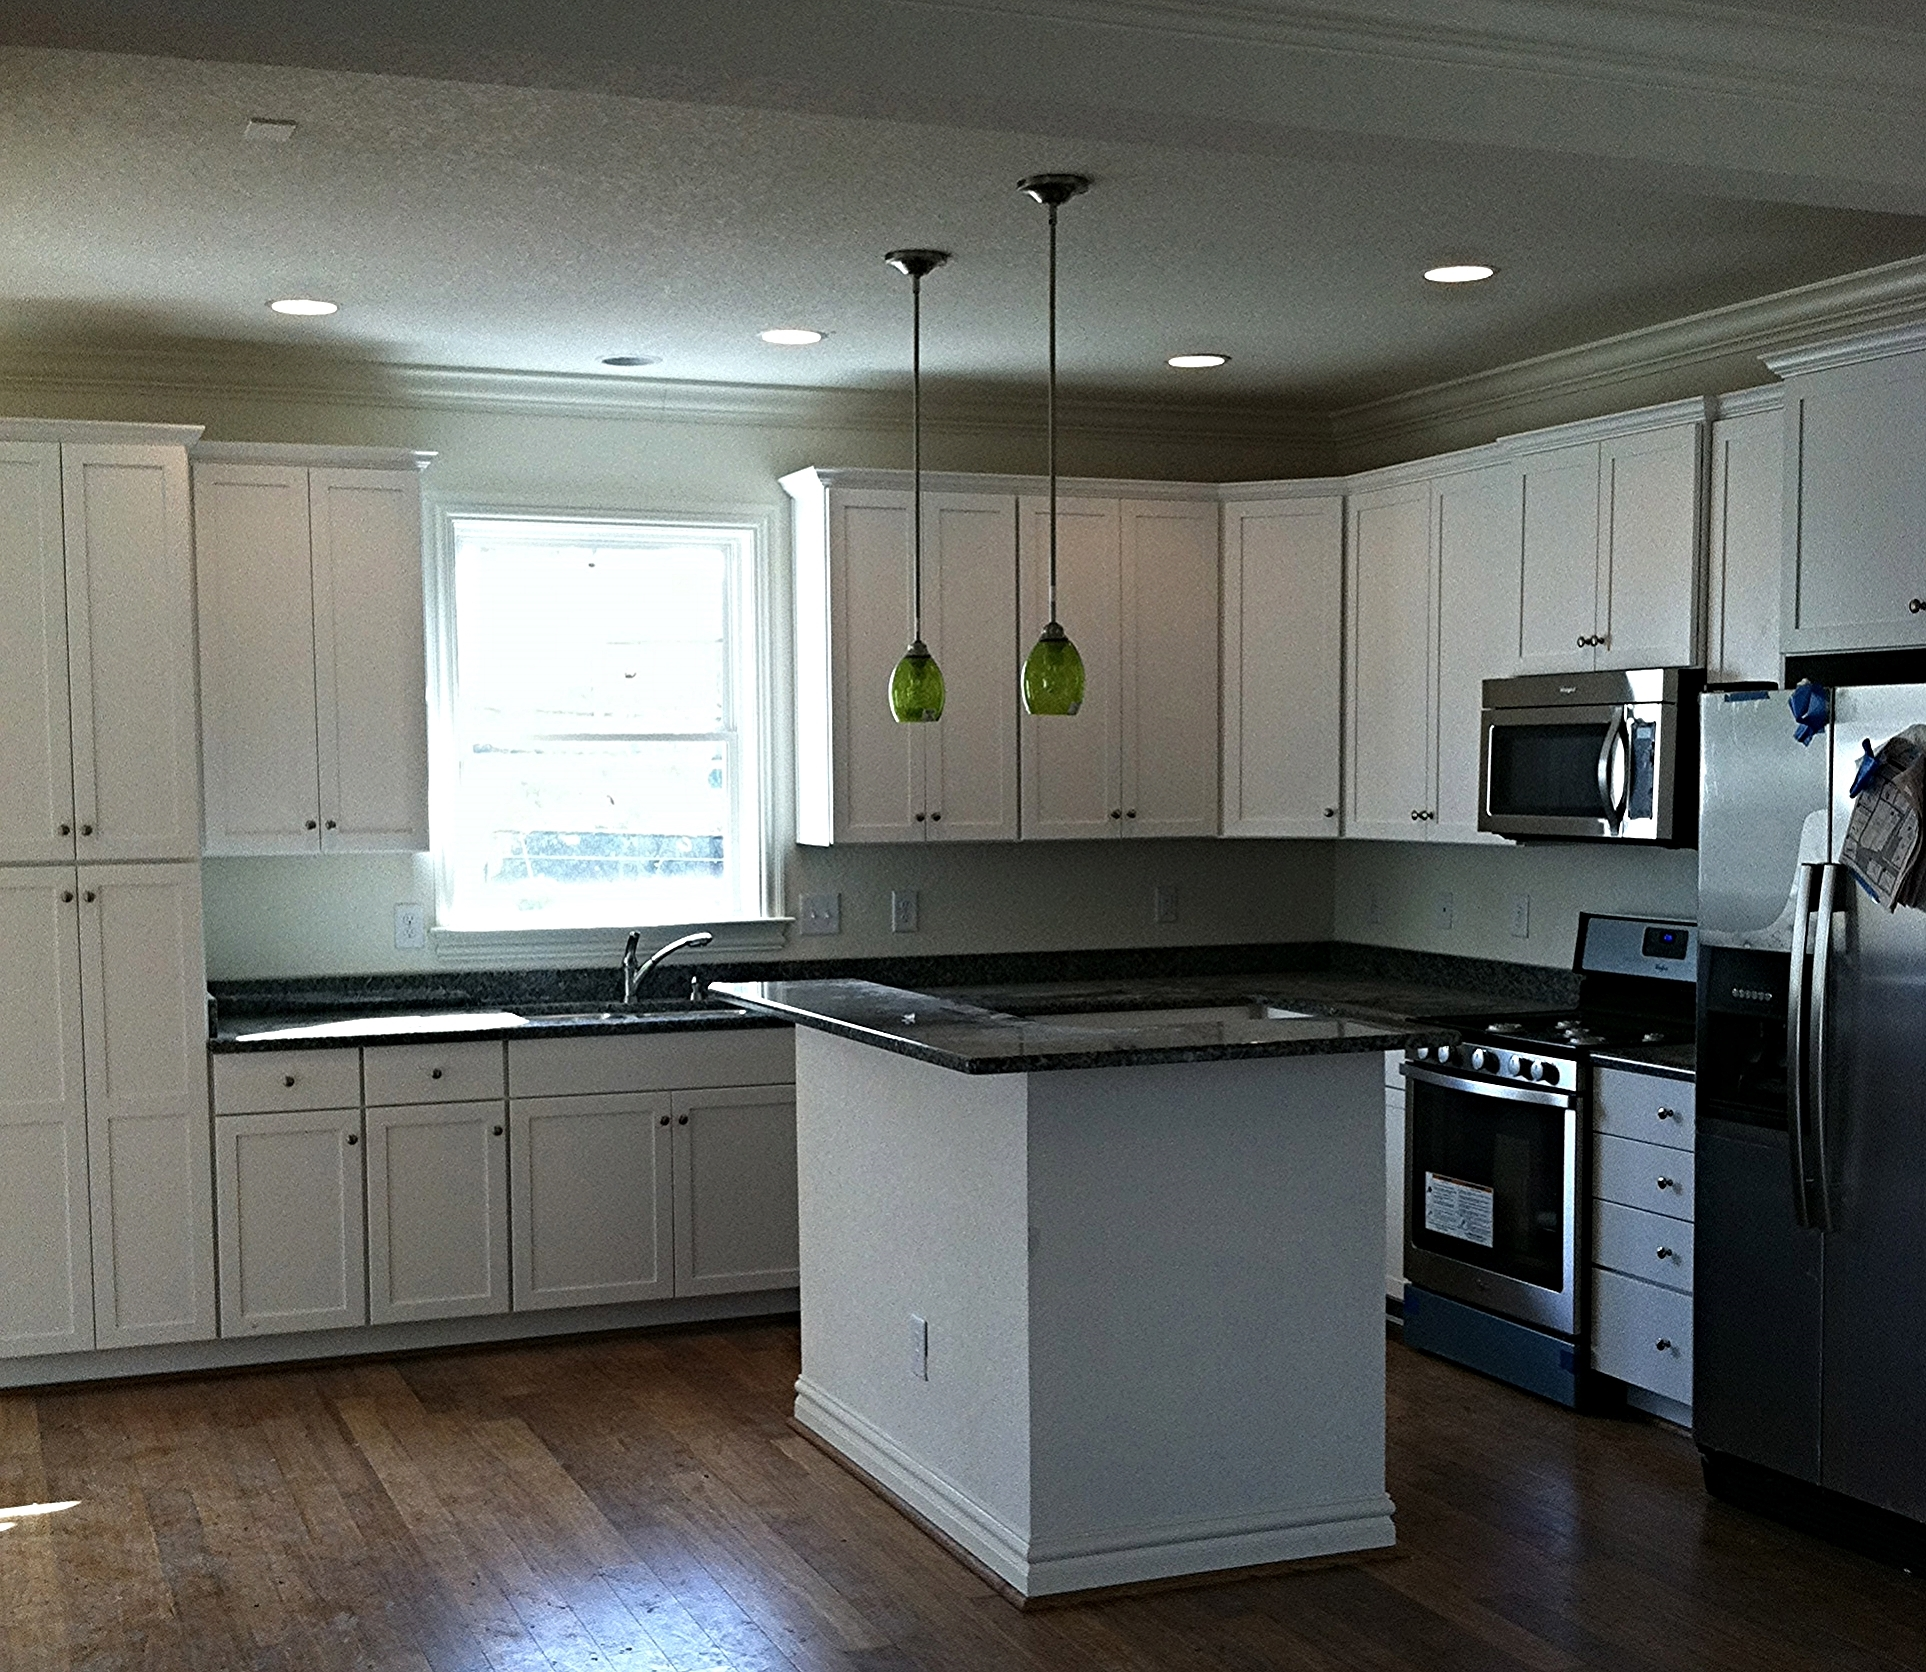 White Painted Shaker Style Cabinets.